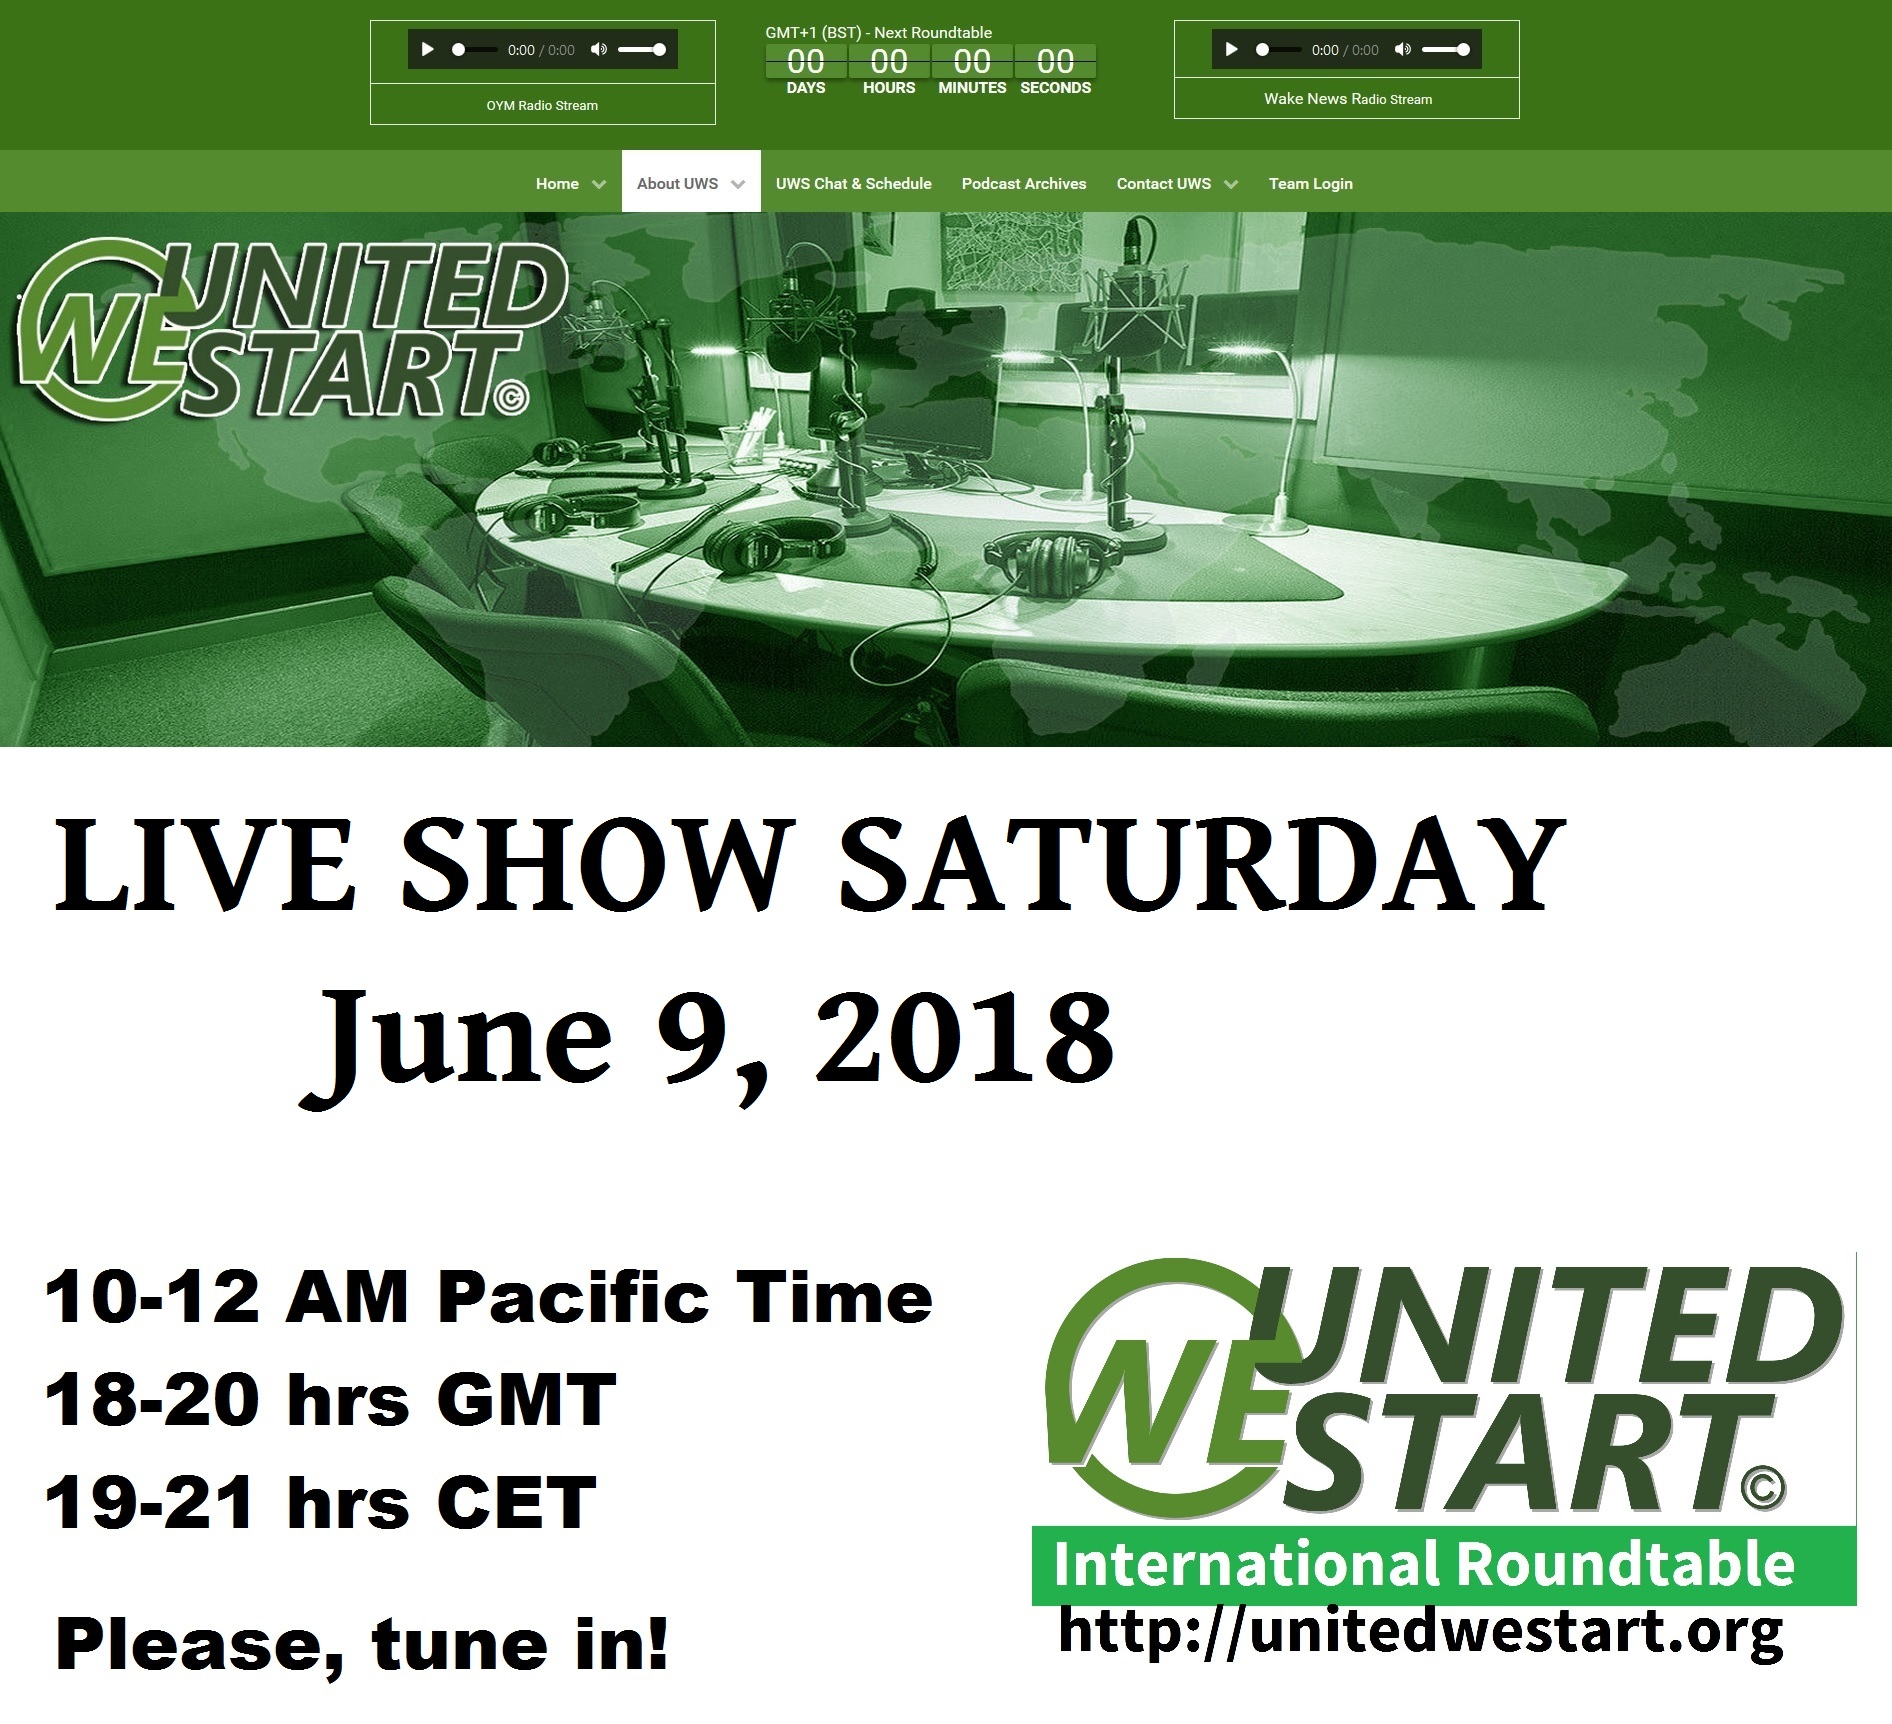 United We Start Roundtable Discussion June 9, 2018 – Bilderberger ...